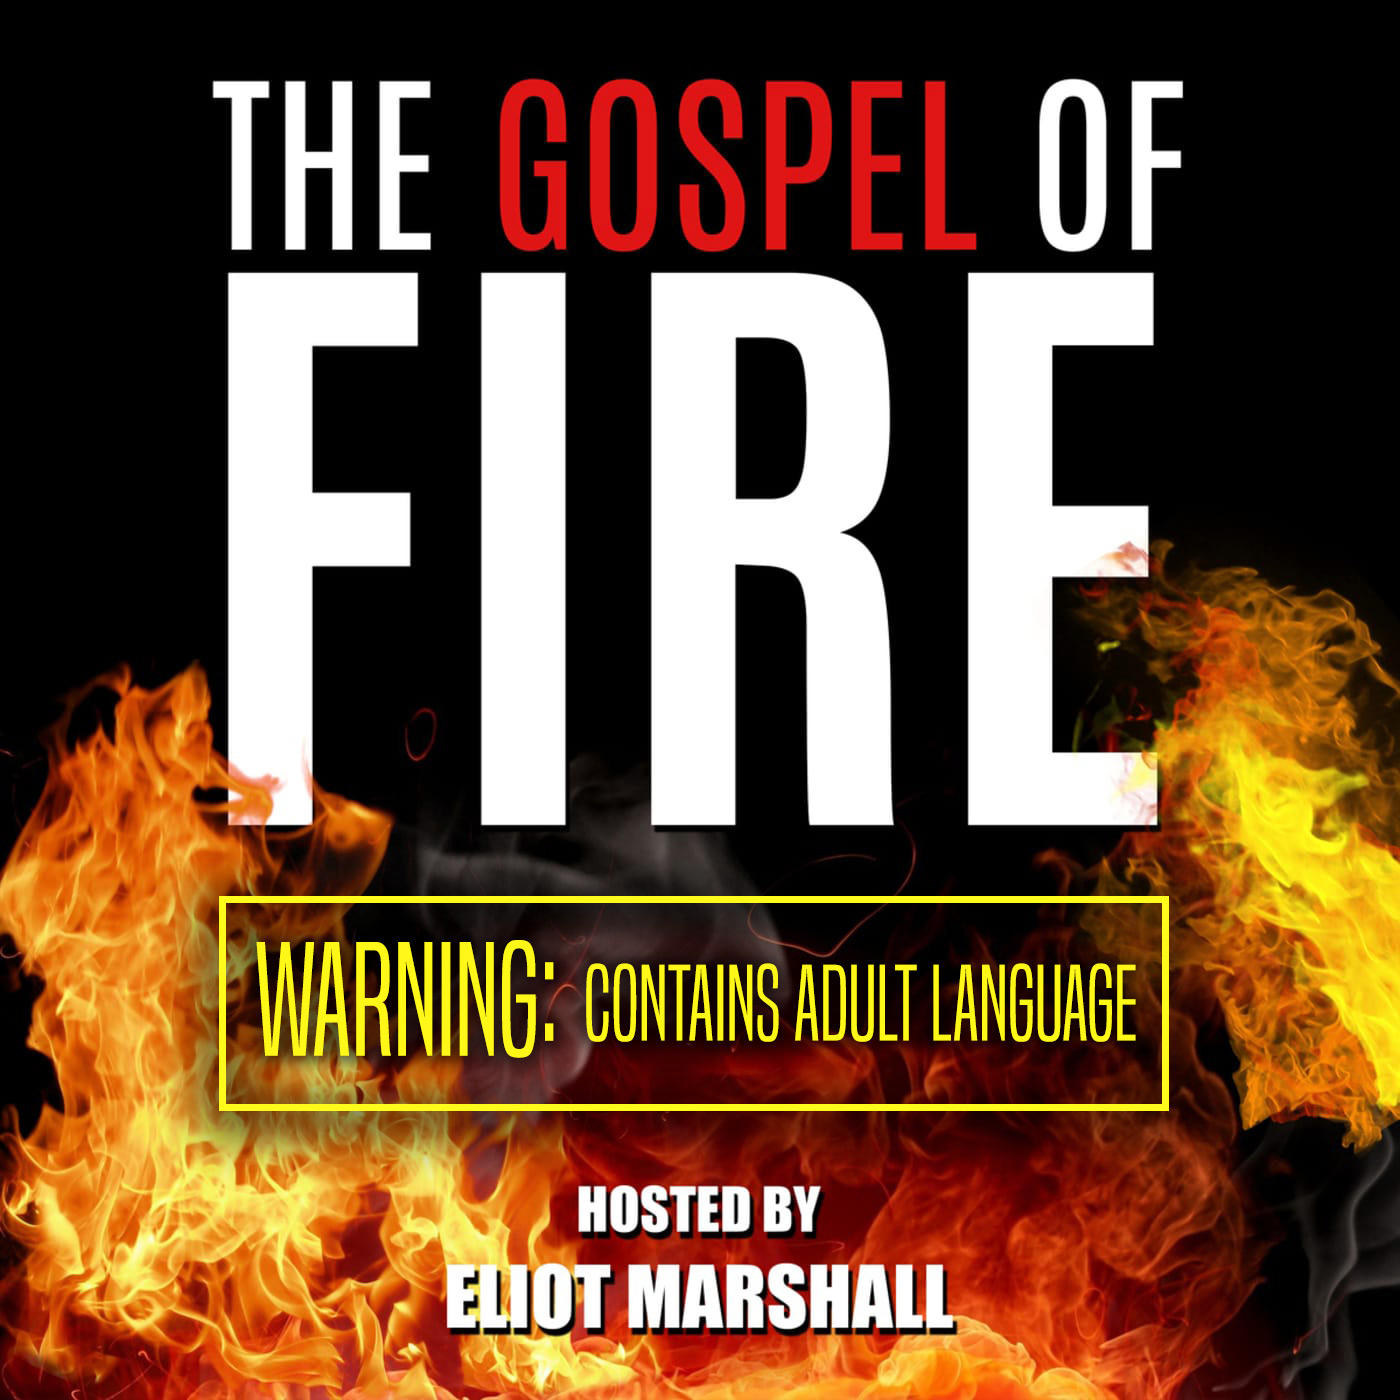 The Gospel of Fire